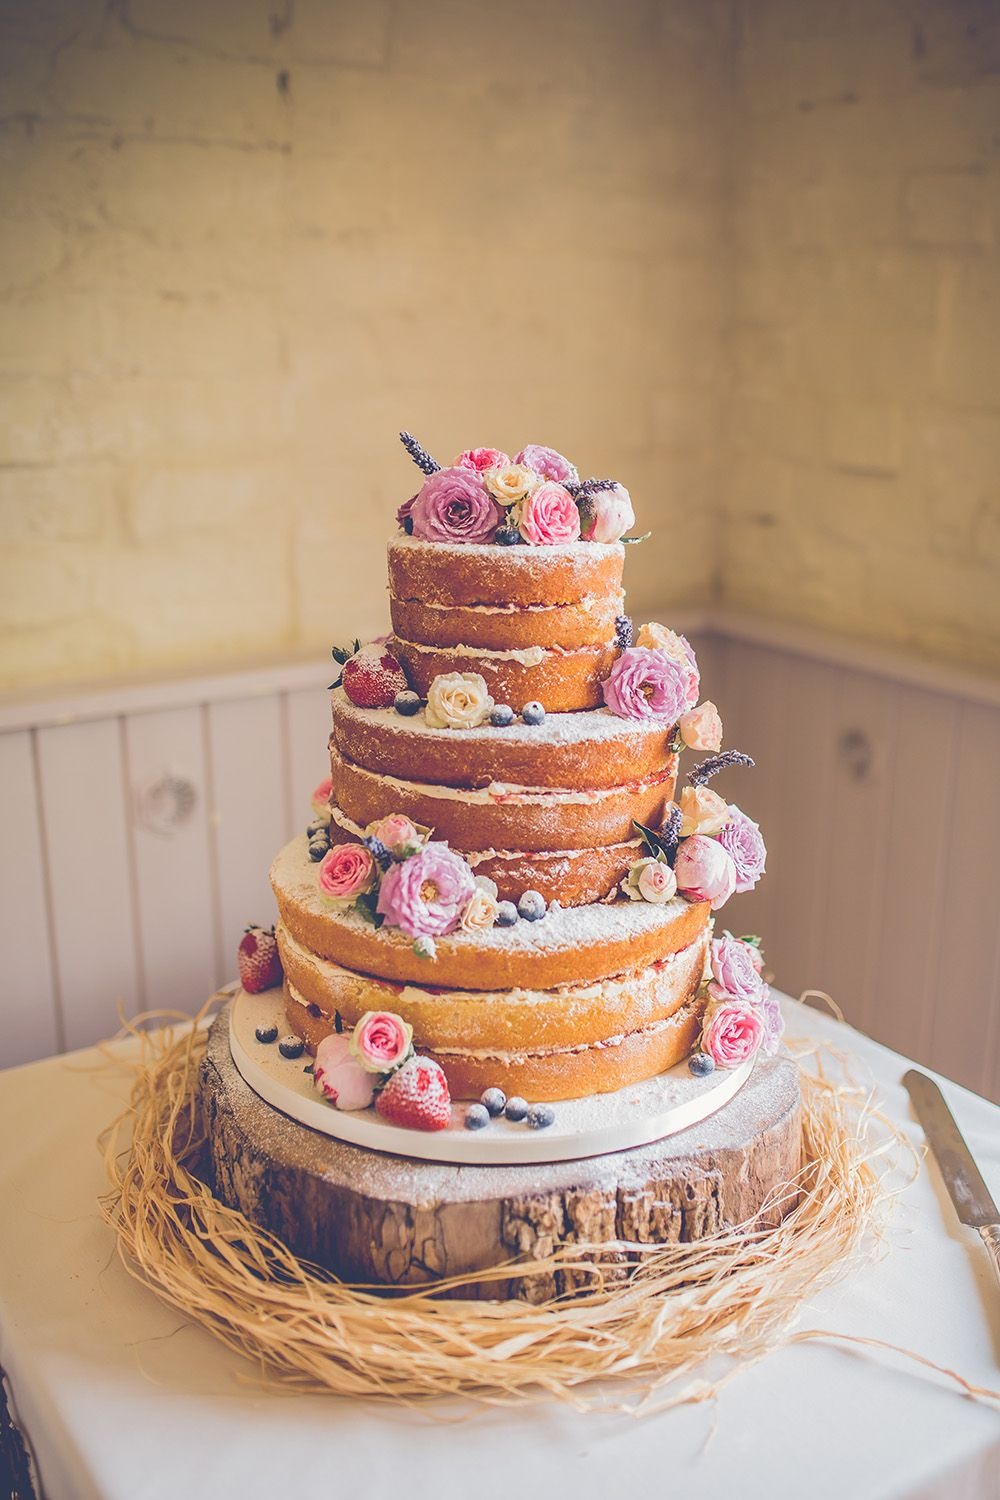 beach themed wedding cakes pinterest%0A Beautiful naked wedding cake on a wooden plate